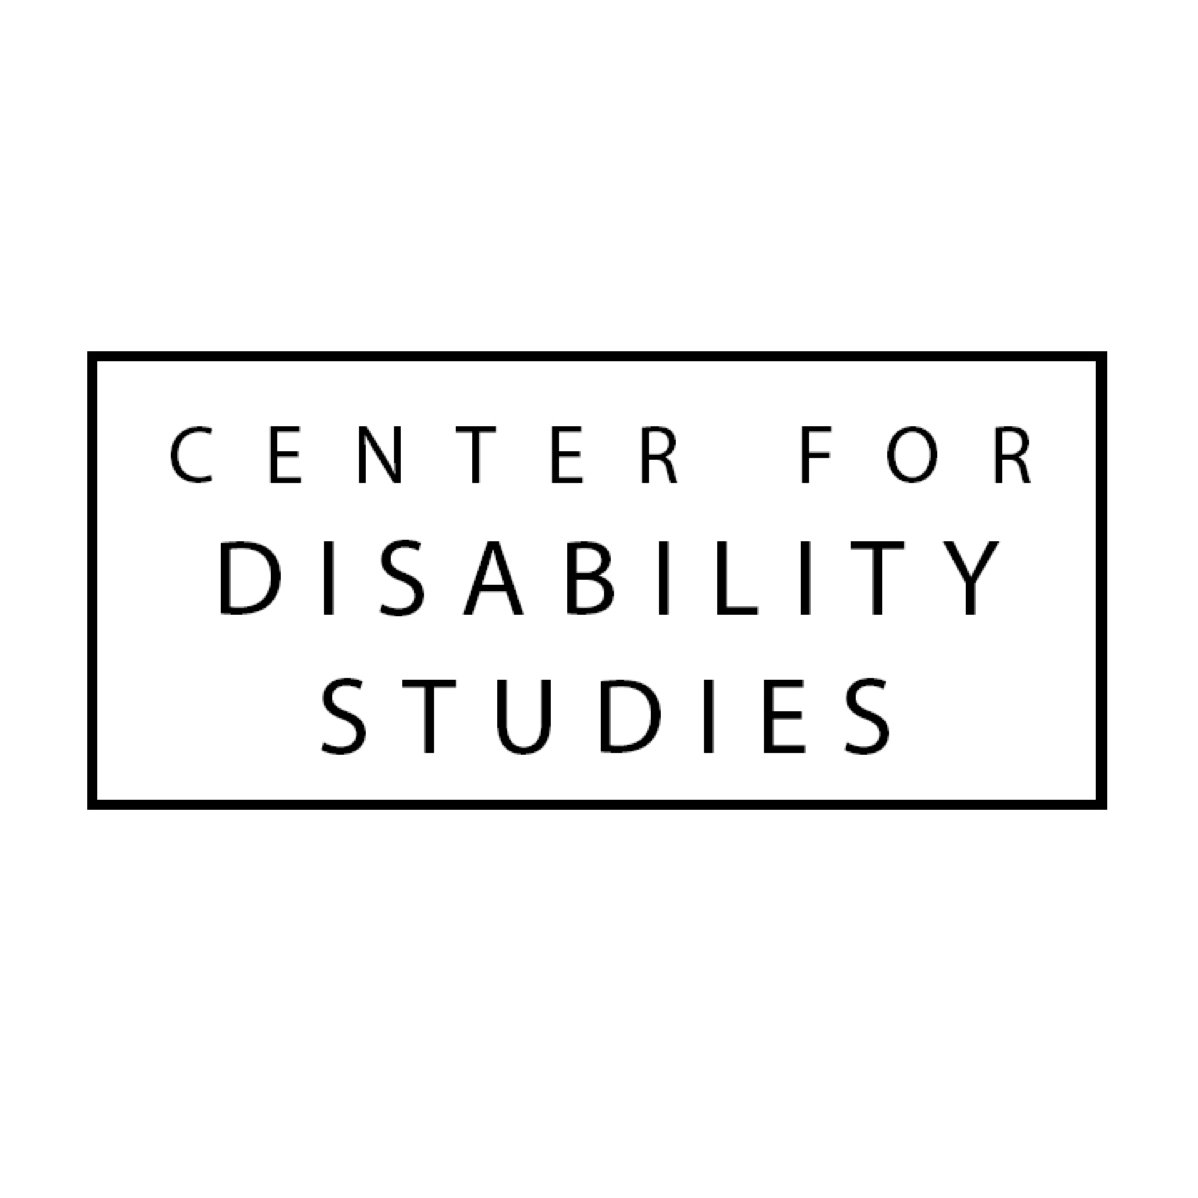 Center for Disability Studies at NYU